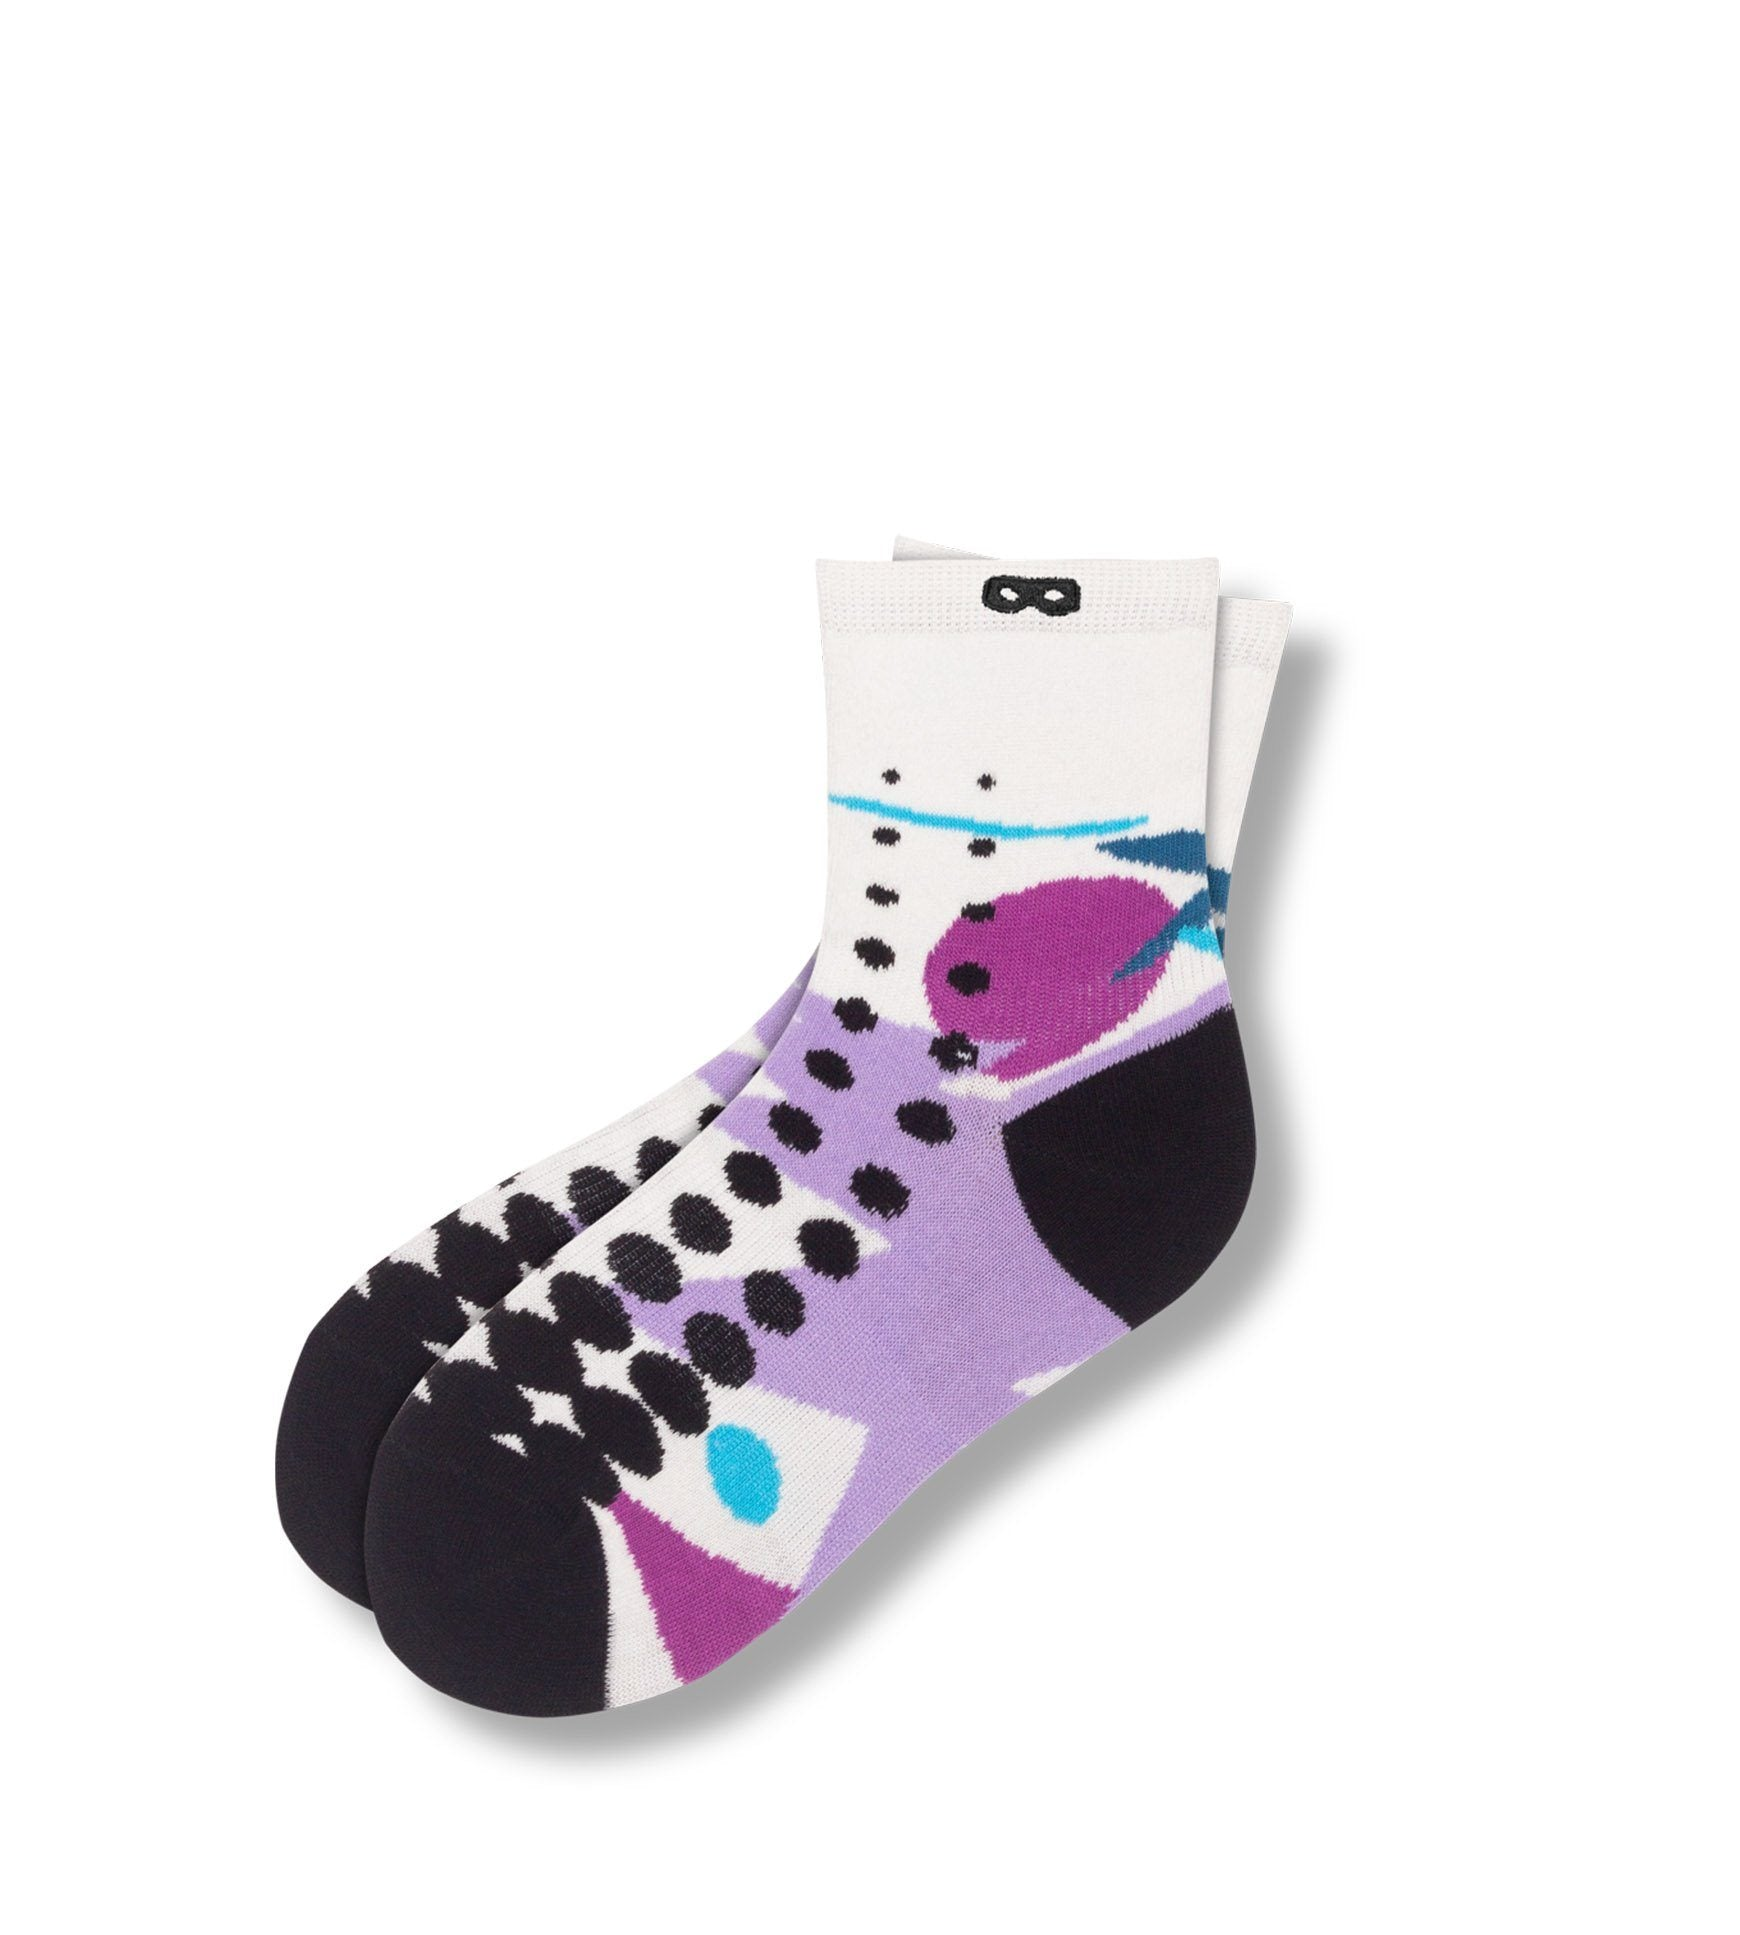 Kimmy Gibler Women's Ankle Socks White With Purple Retro Design